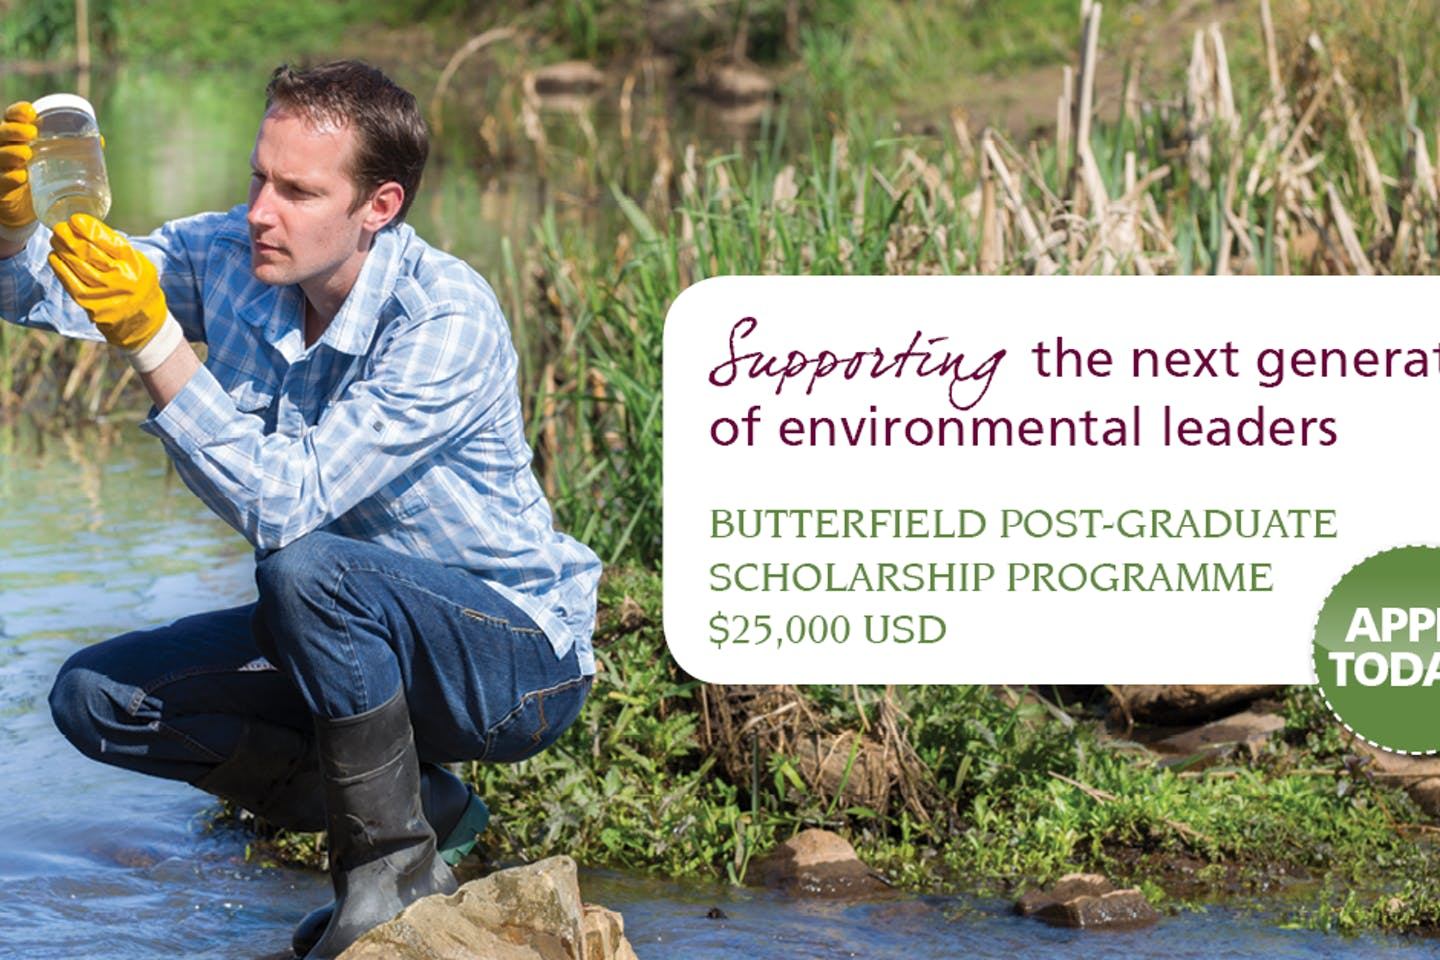 Butterfield expands scholarship to support next generation of environmental leaders to Singapore